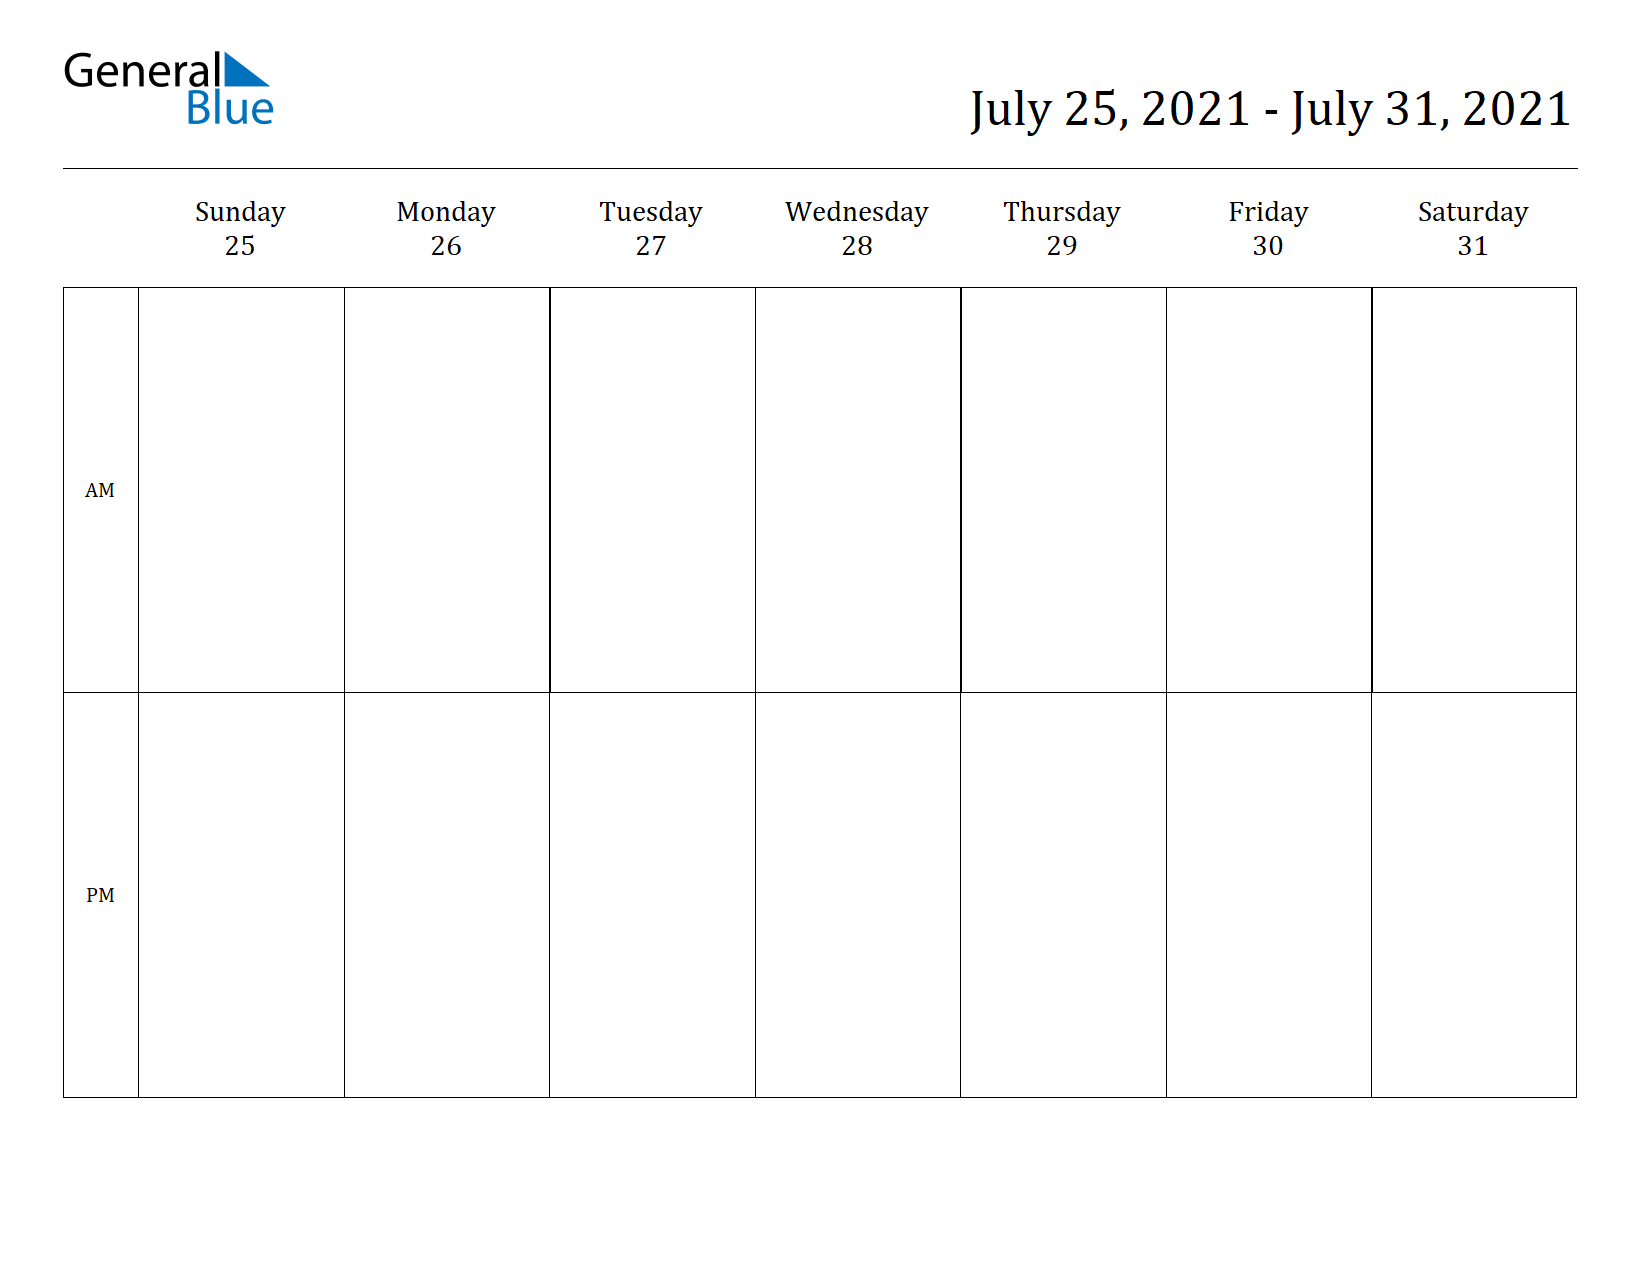 Weekly Calendar for Jul 25, 2021 to Jul 31, 2021